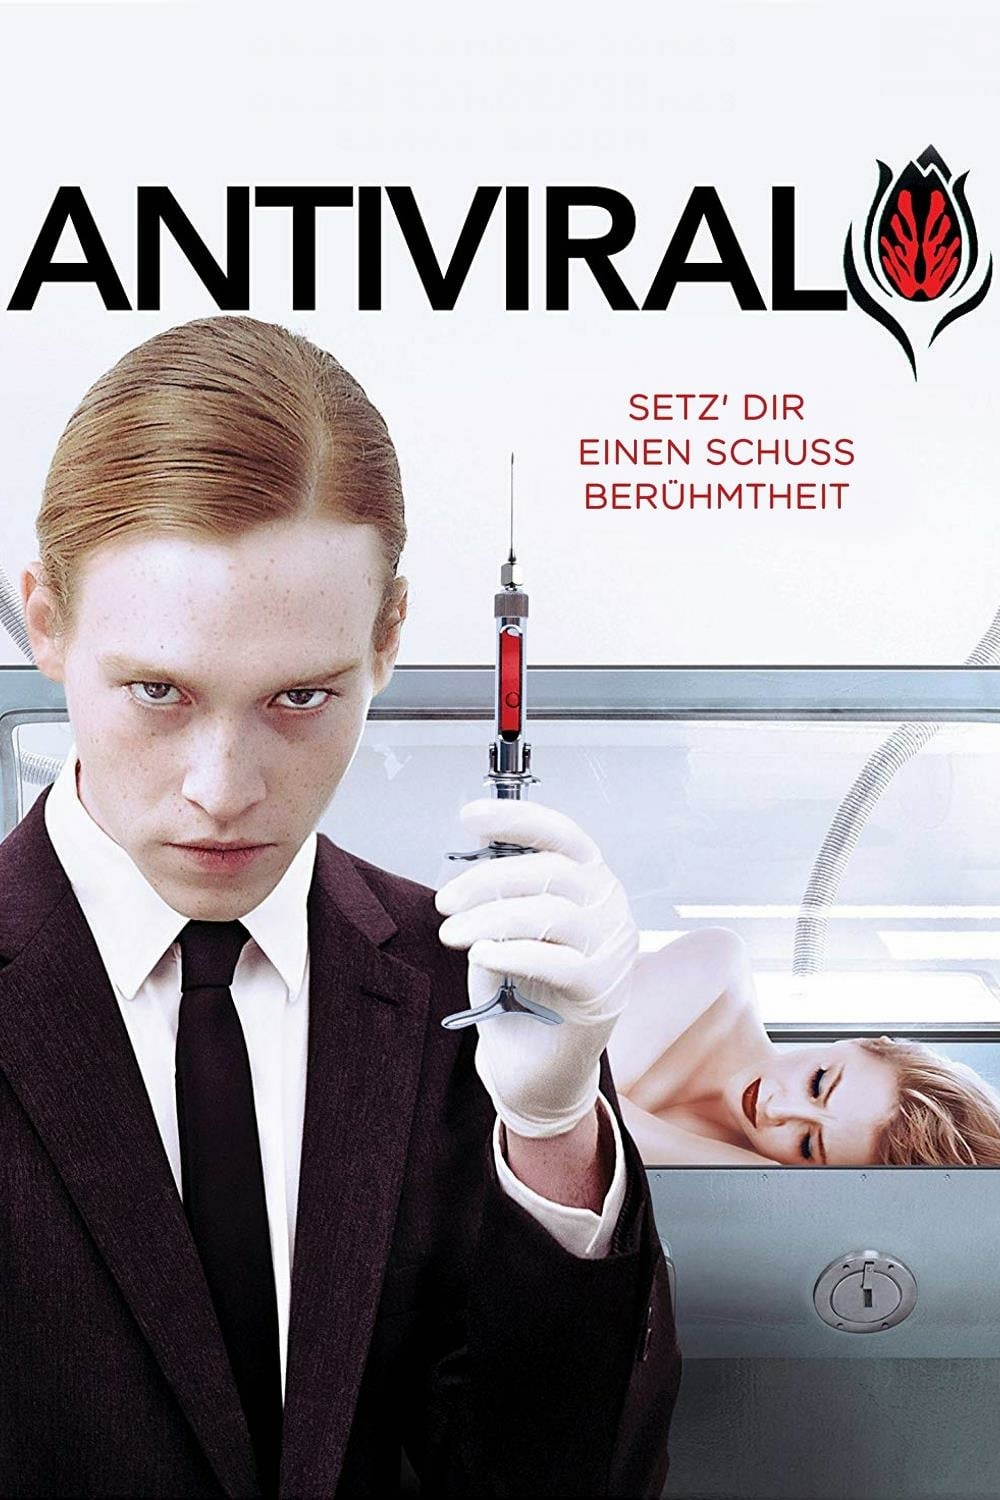 If you don't like medical stuff, especially needles, this isn't the movie for you. While it's beautifully shot, this 2012 film is terrifying on all accounts.